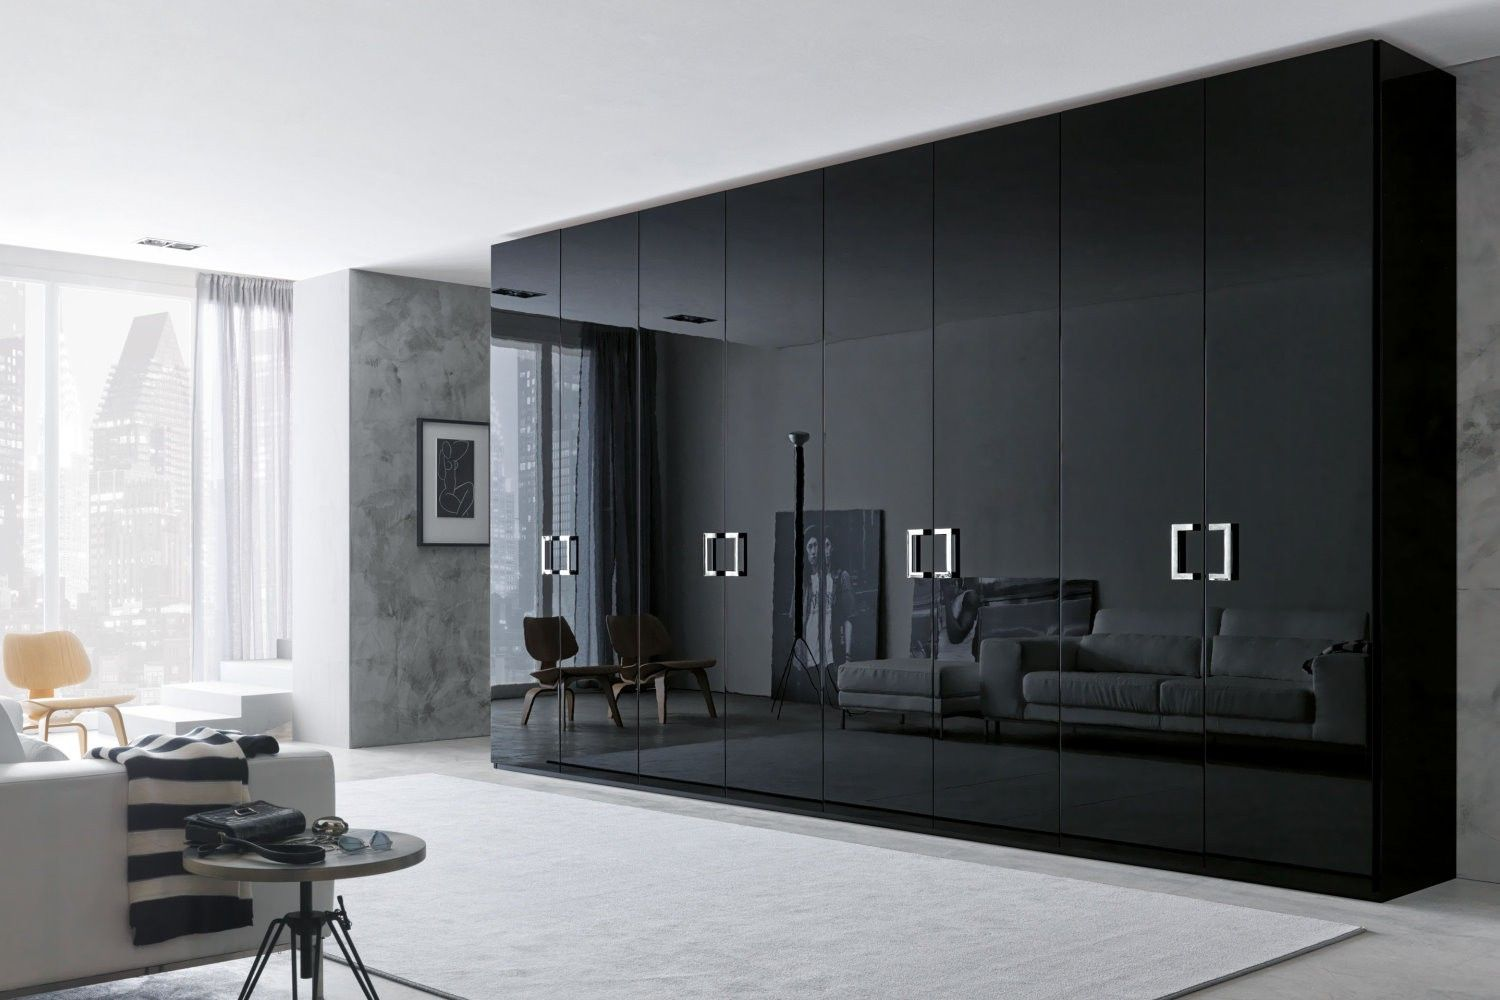 35 modern wardrobe furniture designs wardrobe design Design wardrobe for bedroom